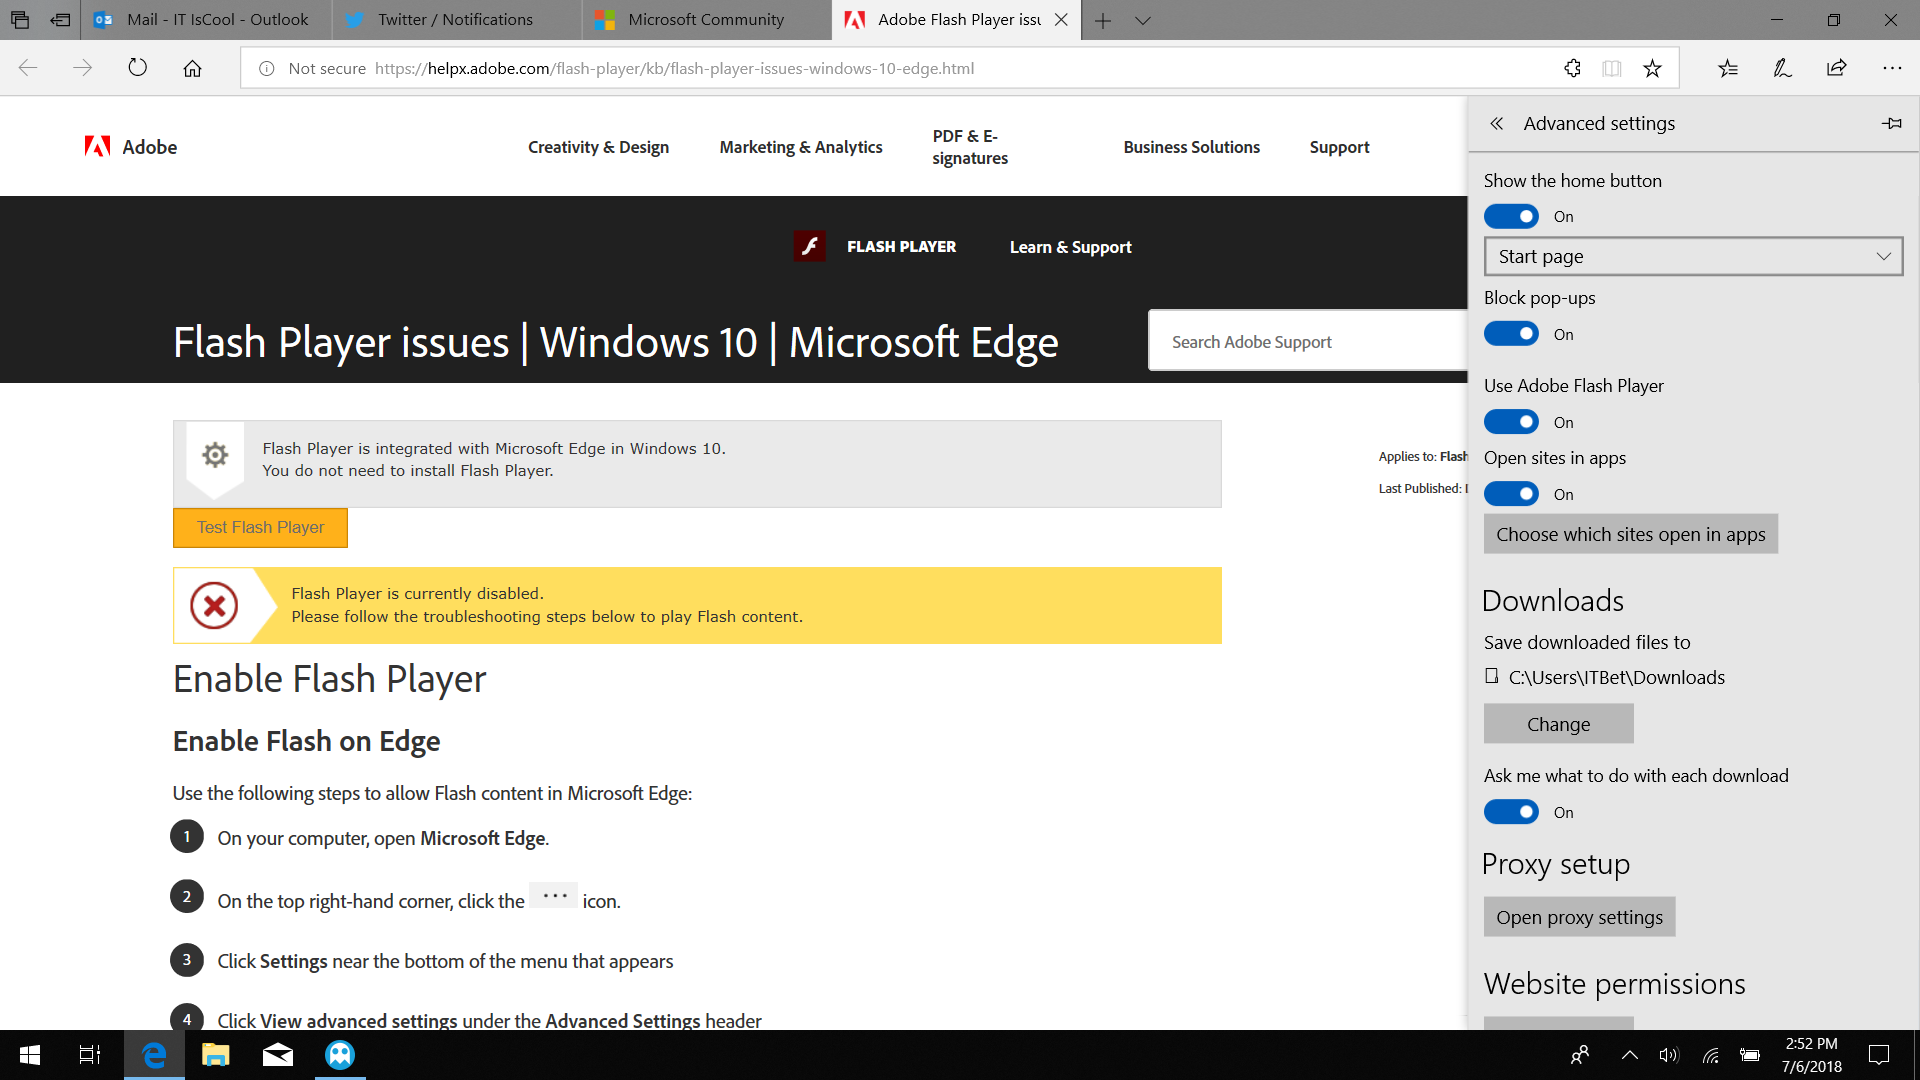 Websites are not recognizing that Adobe Flash Player is